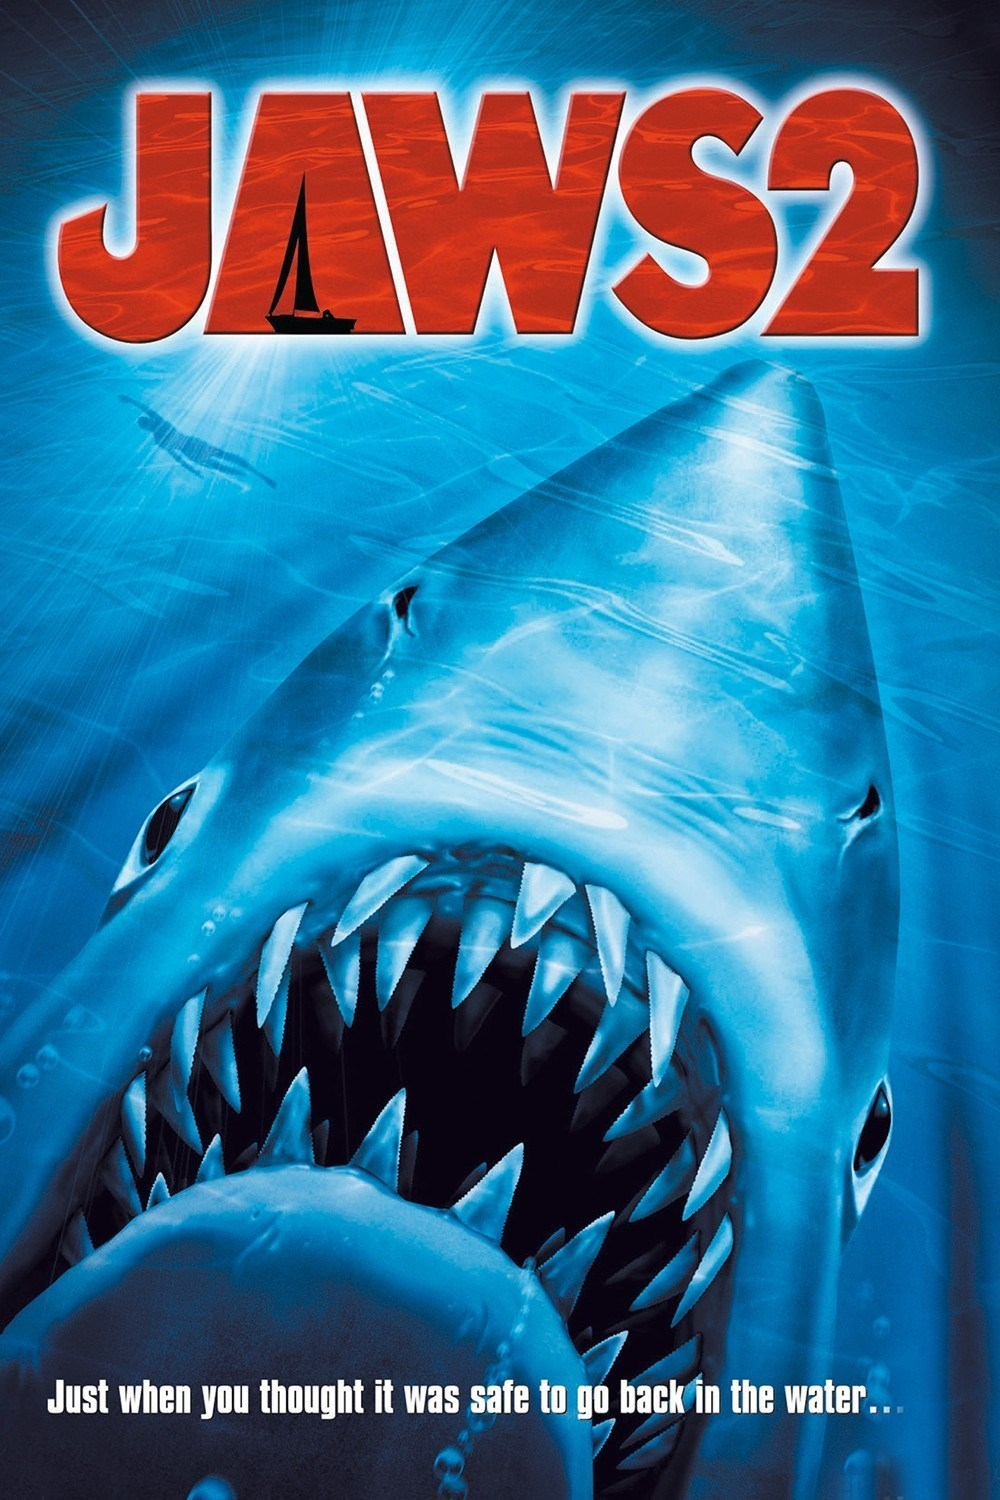 suspense in steven spielbergs movie jaws essay Steven spielberg's original plan for jaws 2 after completing work on his adaptation of peter benchley's novel jaws in 1974, steven —from an essay.